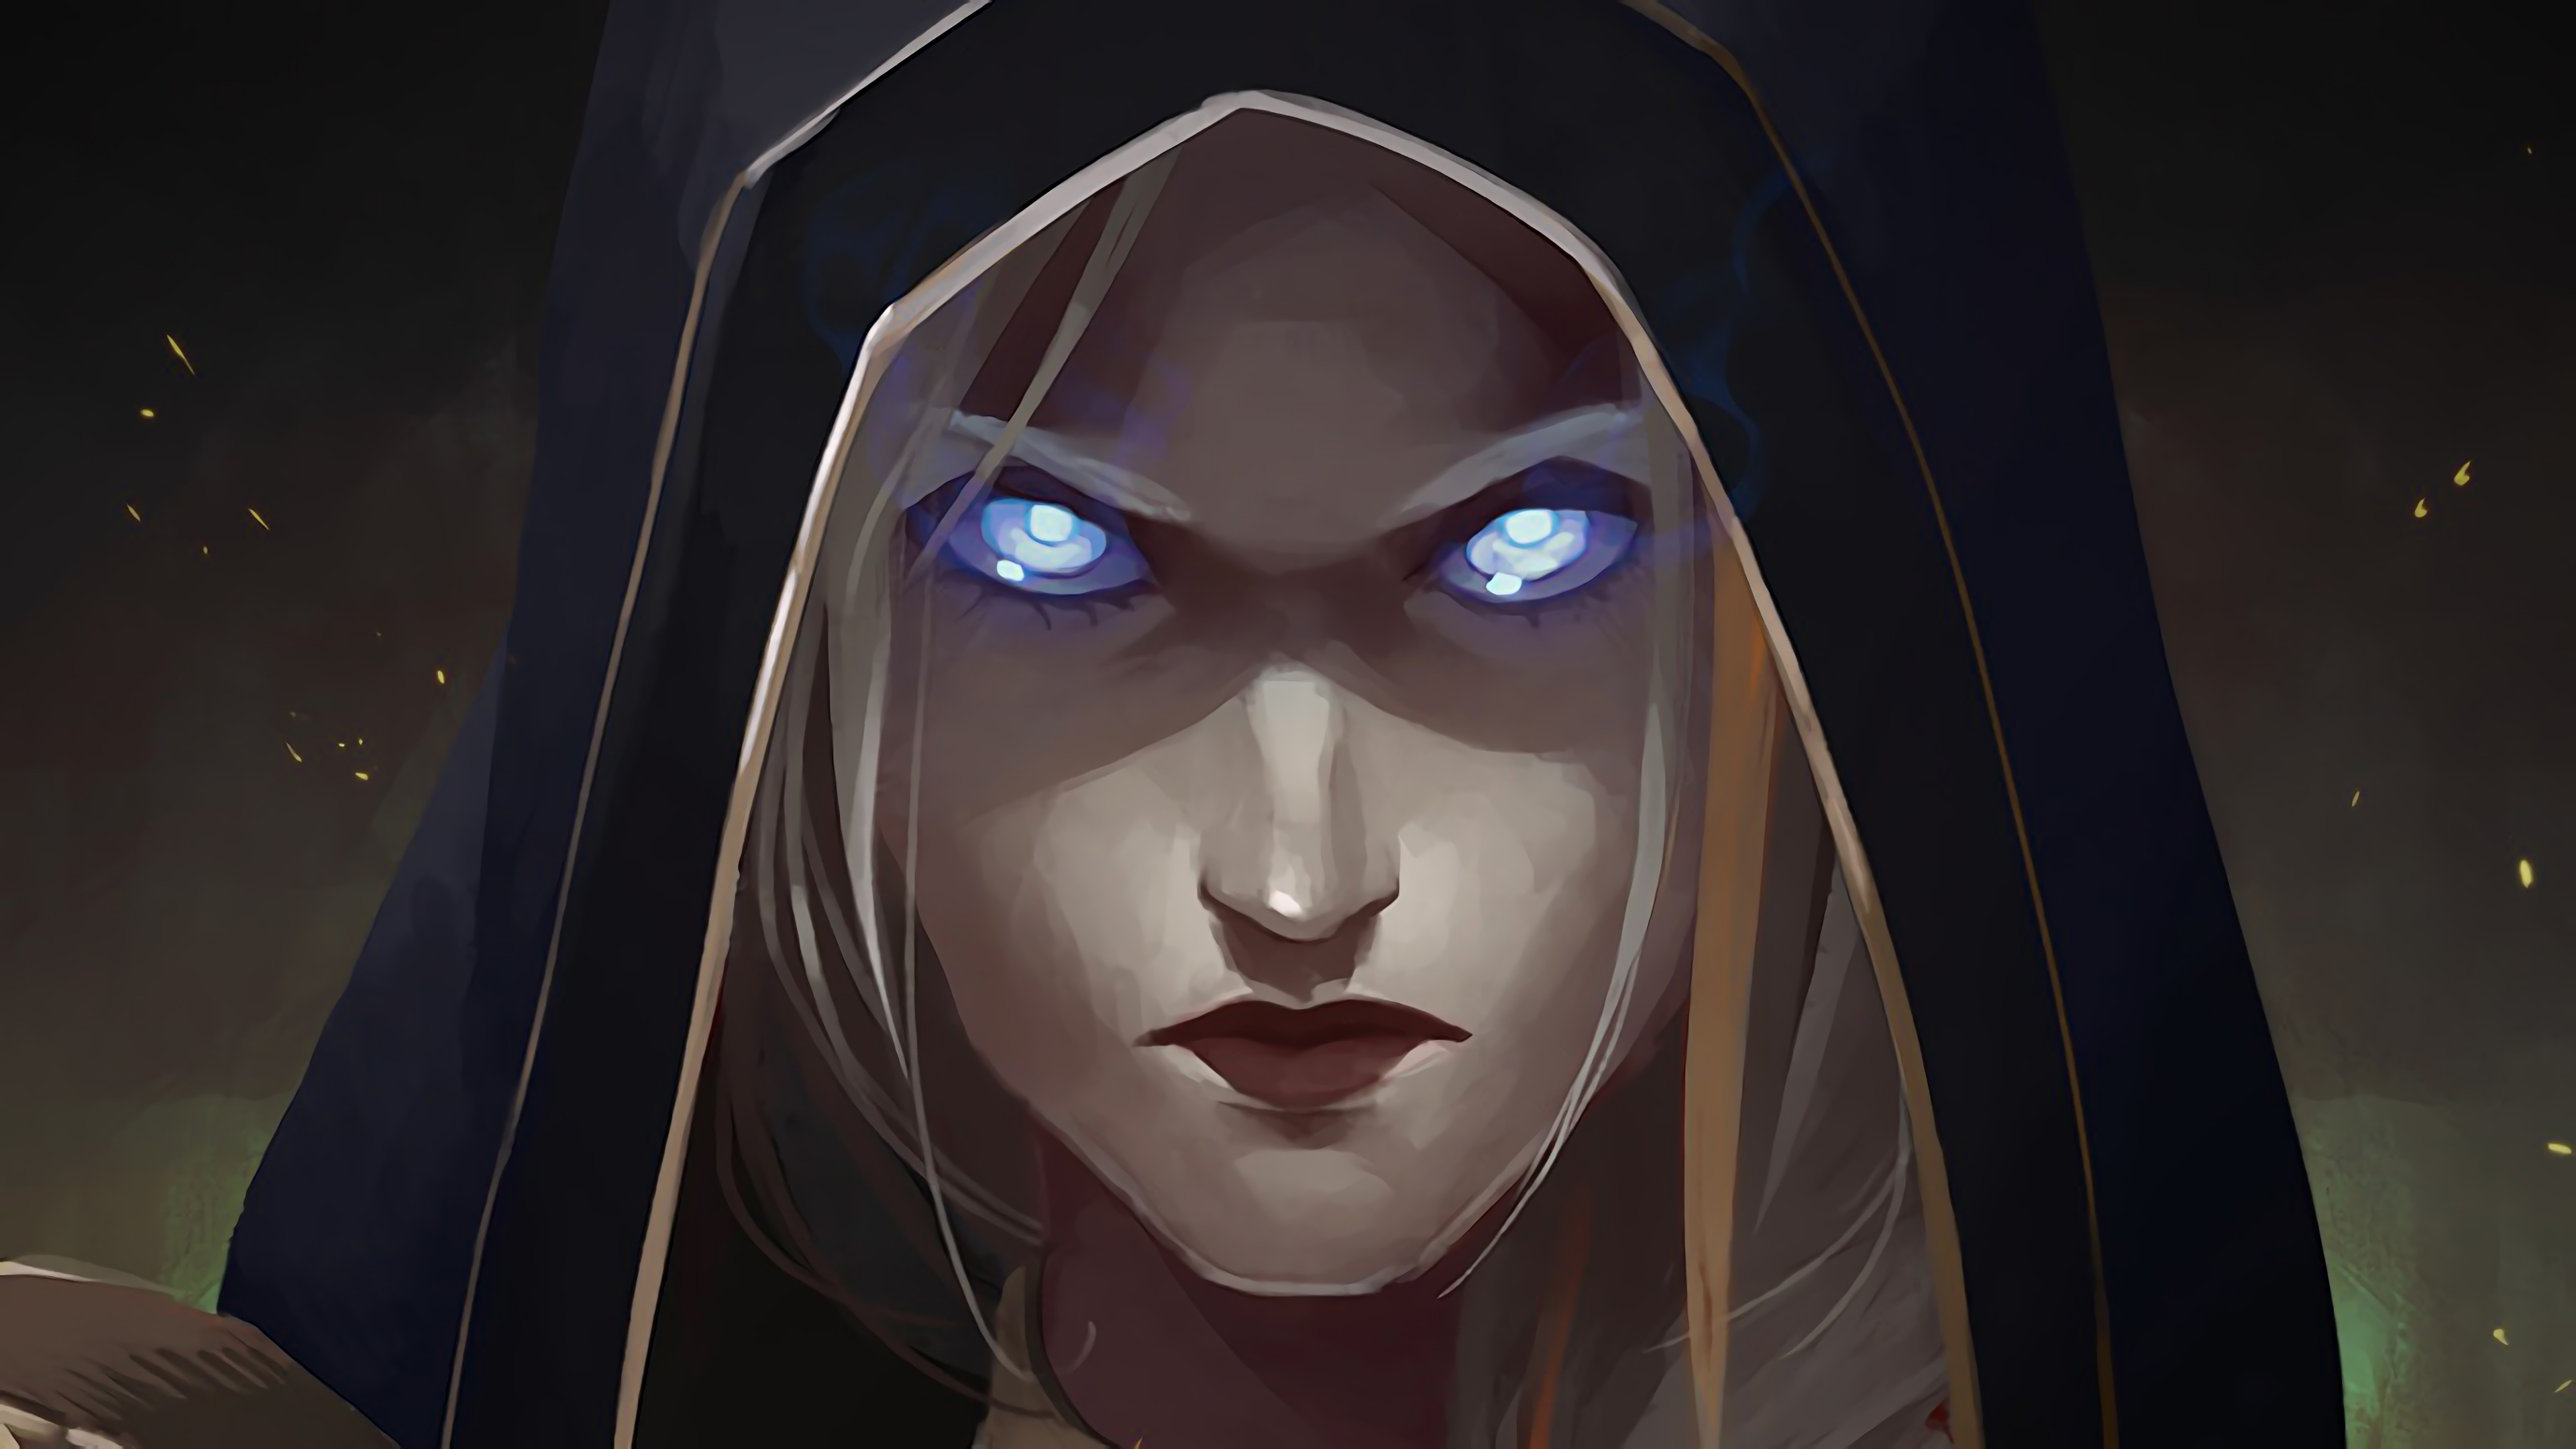 World Of Warcraft Wallpapers Hd Jaina Proudmoore 4k 8k Hd World Of Warcraft Wallpaper